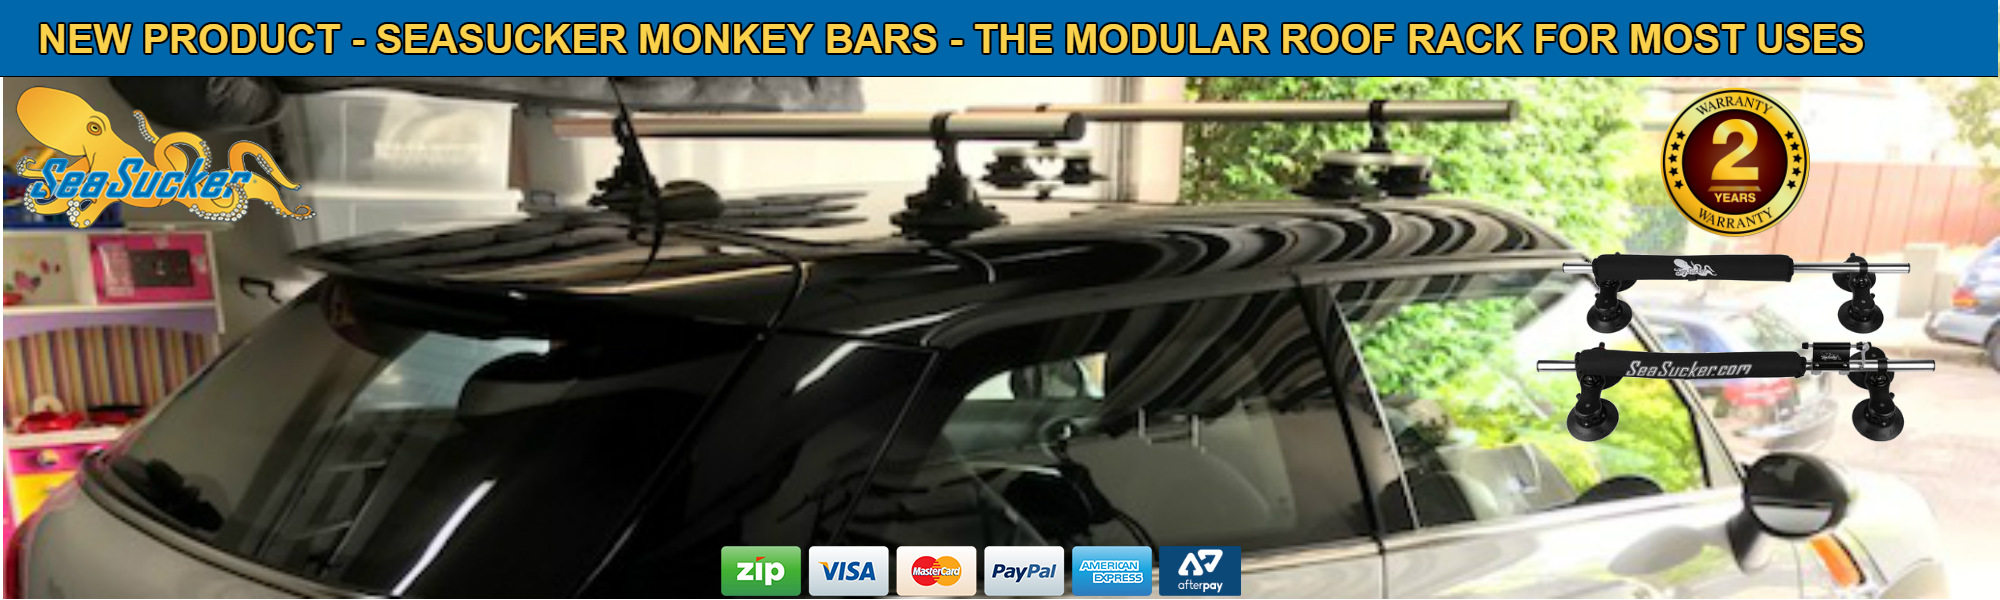 SeaSucker Monkey Bars Roof Rack Banner